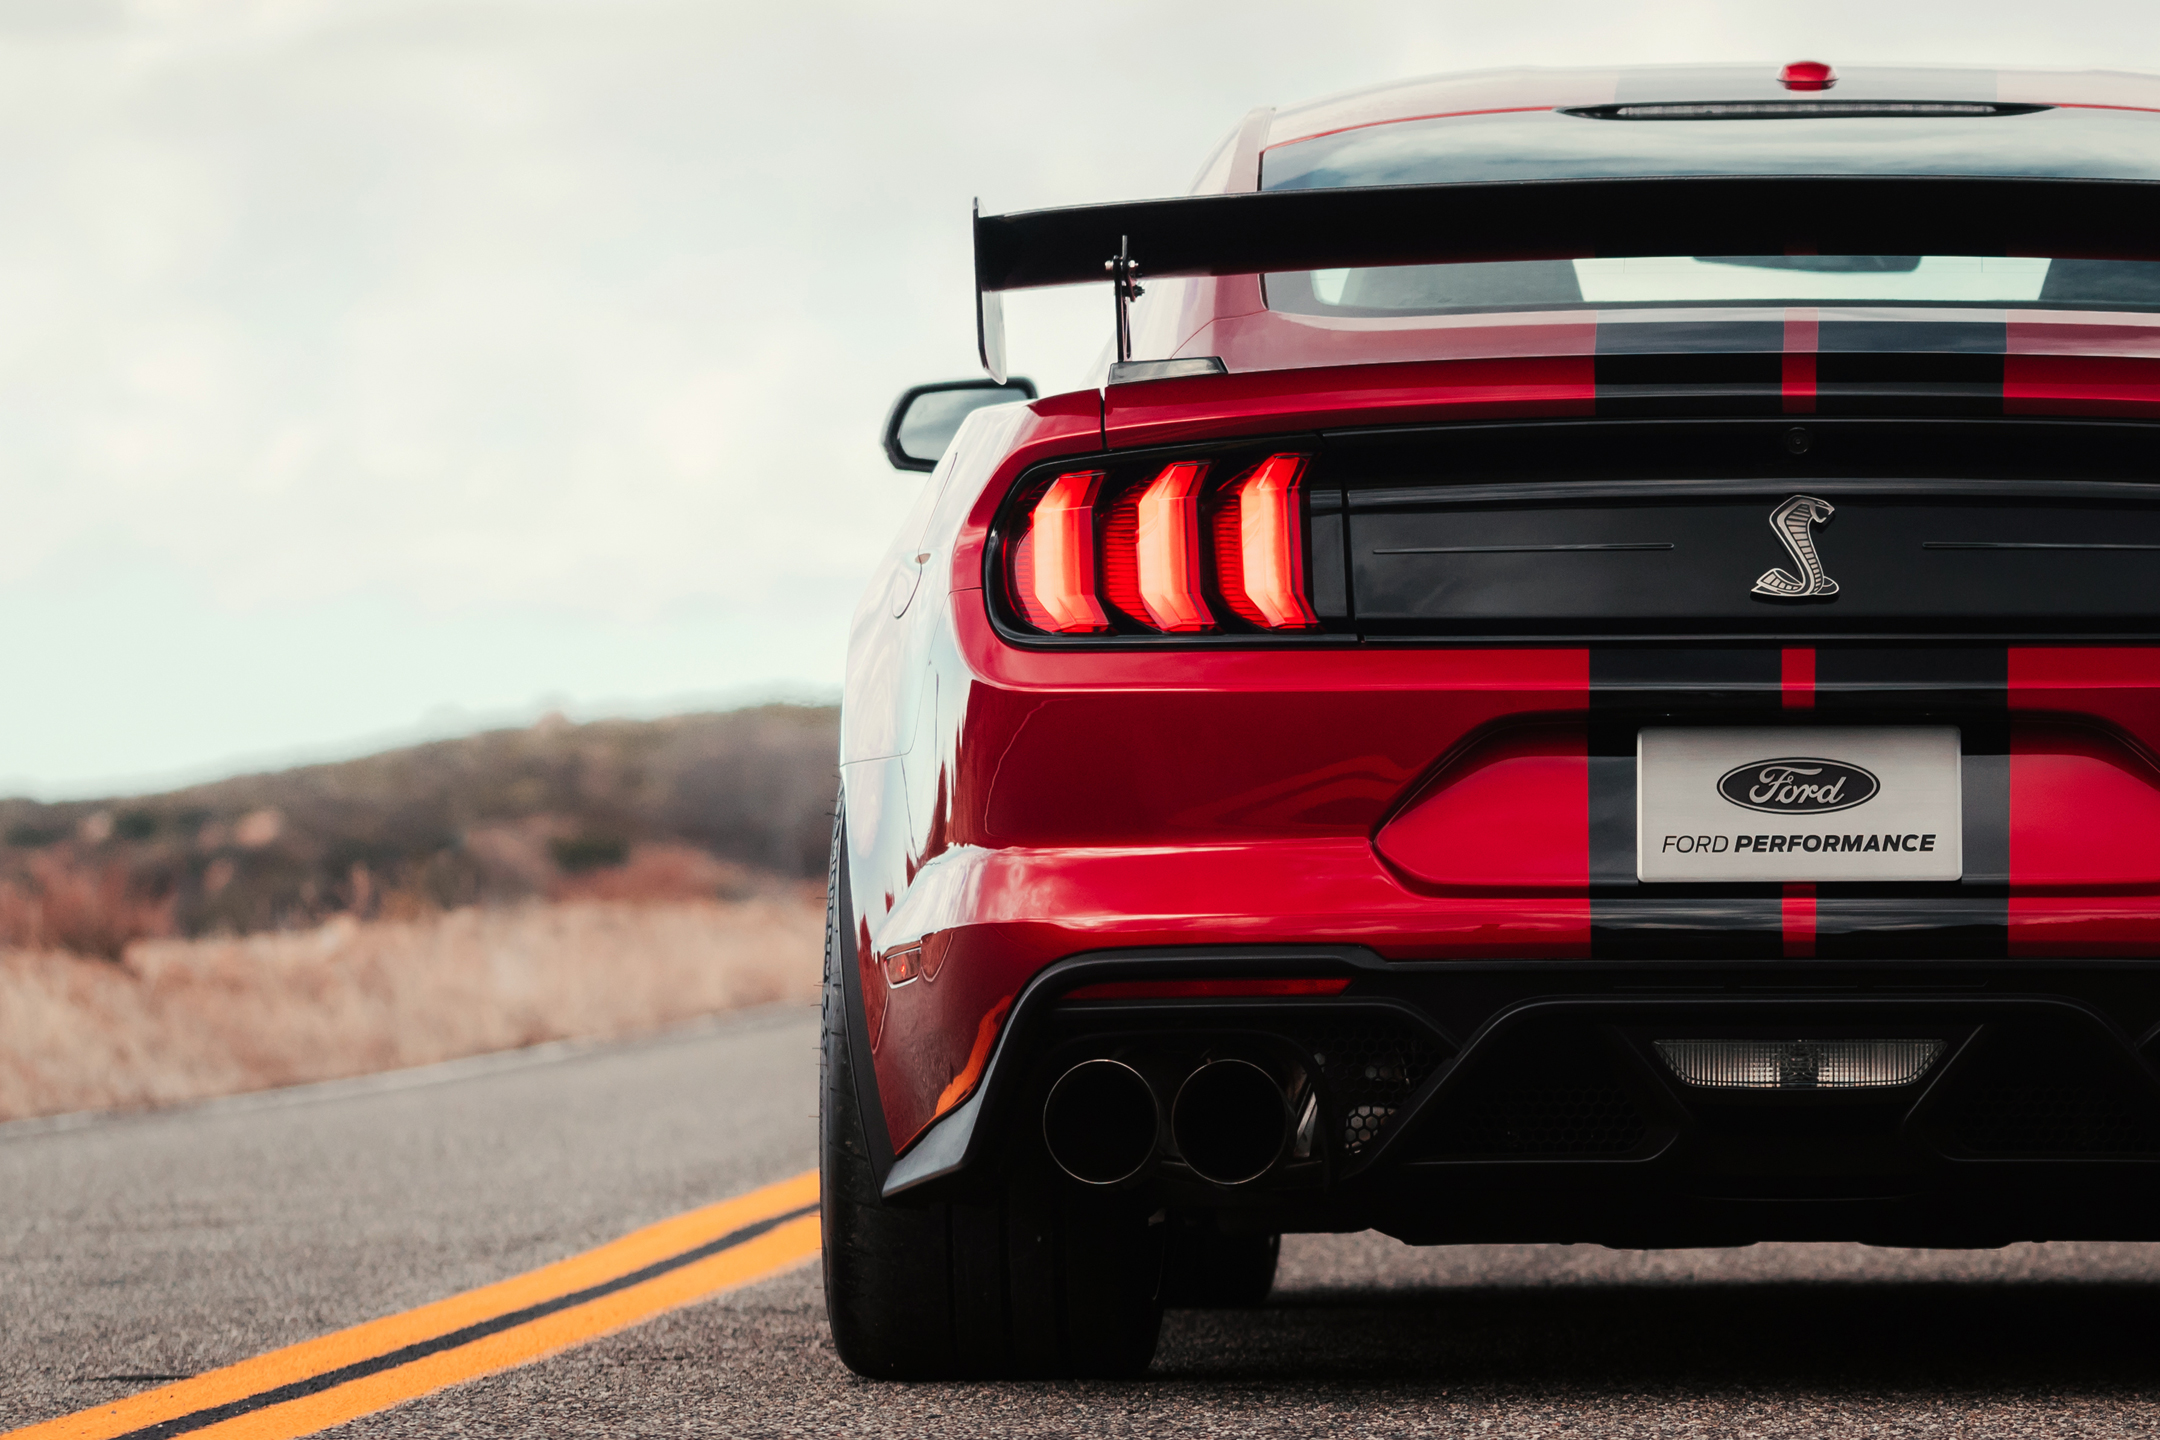 Ford Mustang 2020 Shelby GT500 - 2019 - rear light